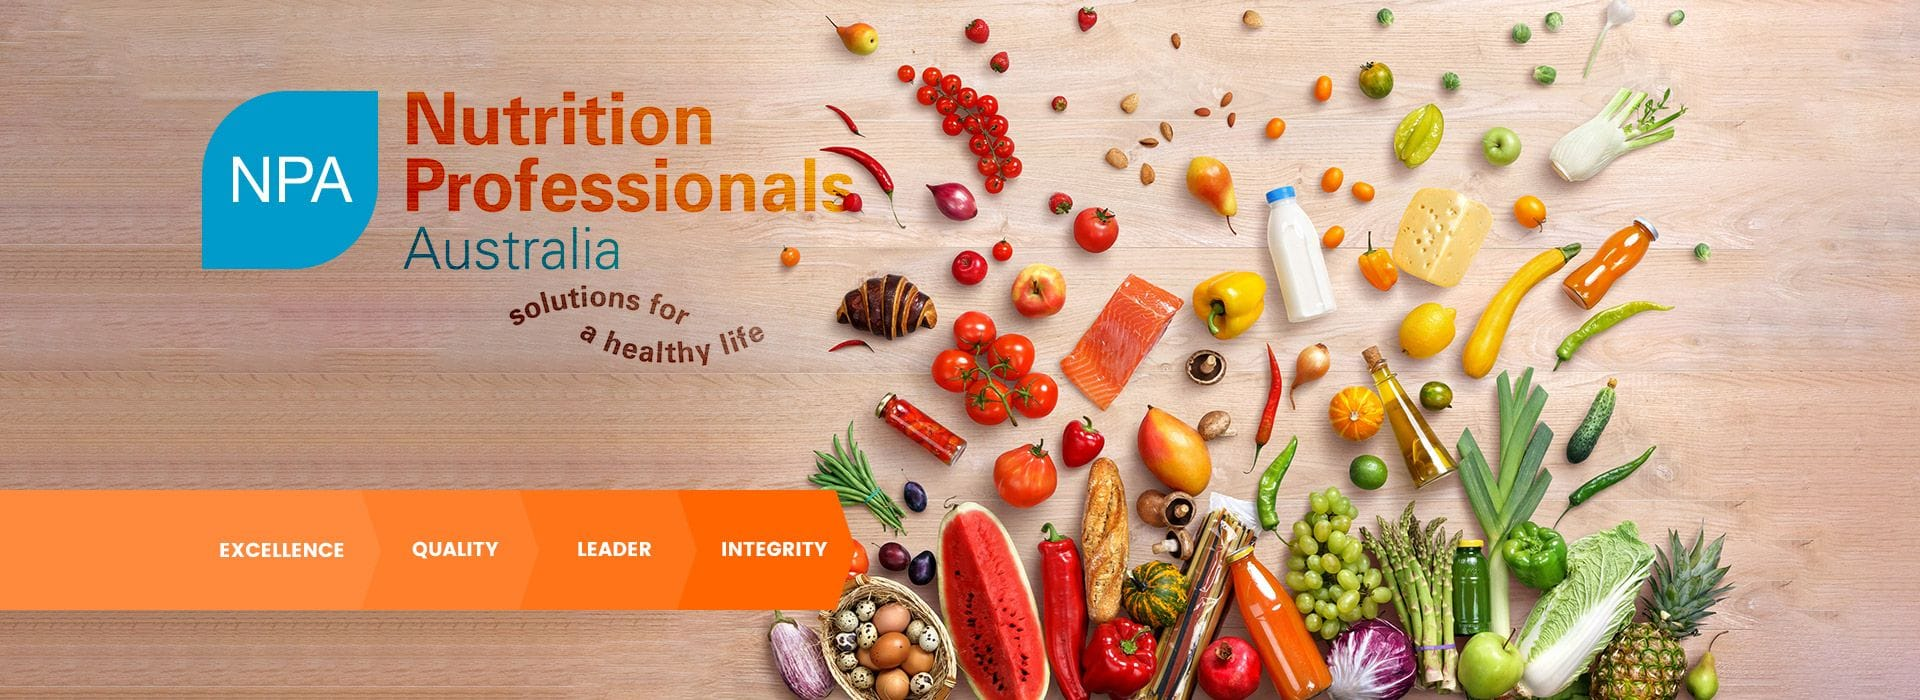 Nutrition Professionals Australia, Solutions for a healthy life.